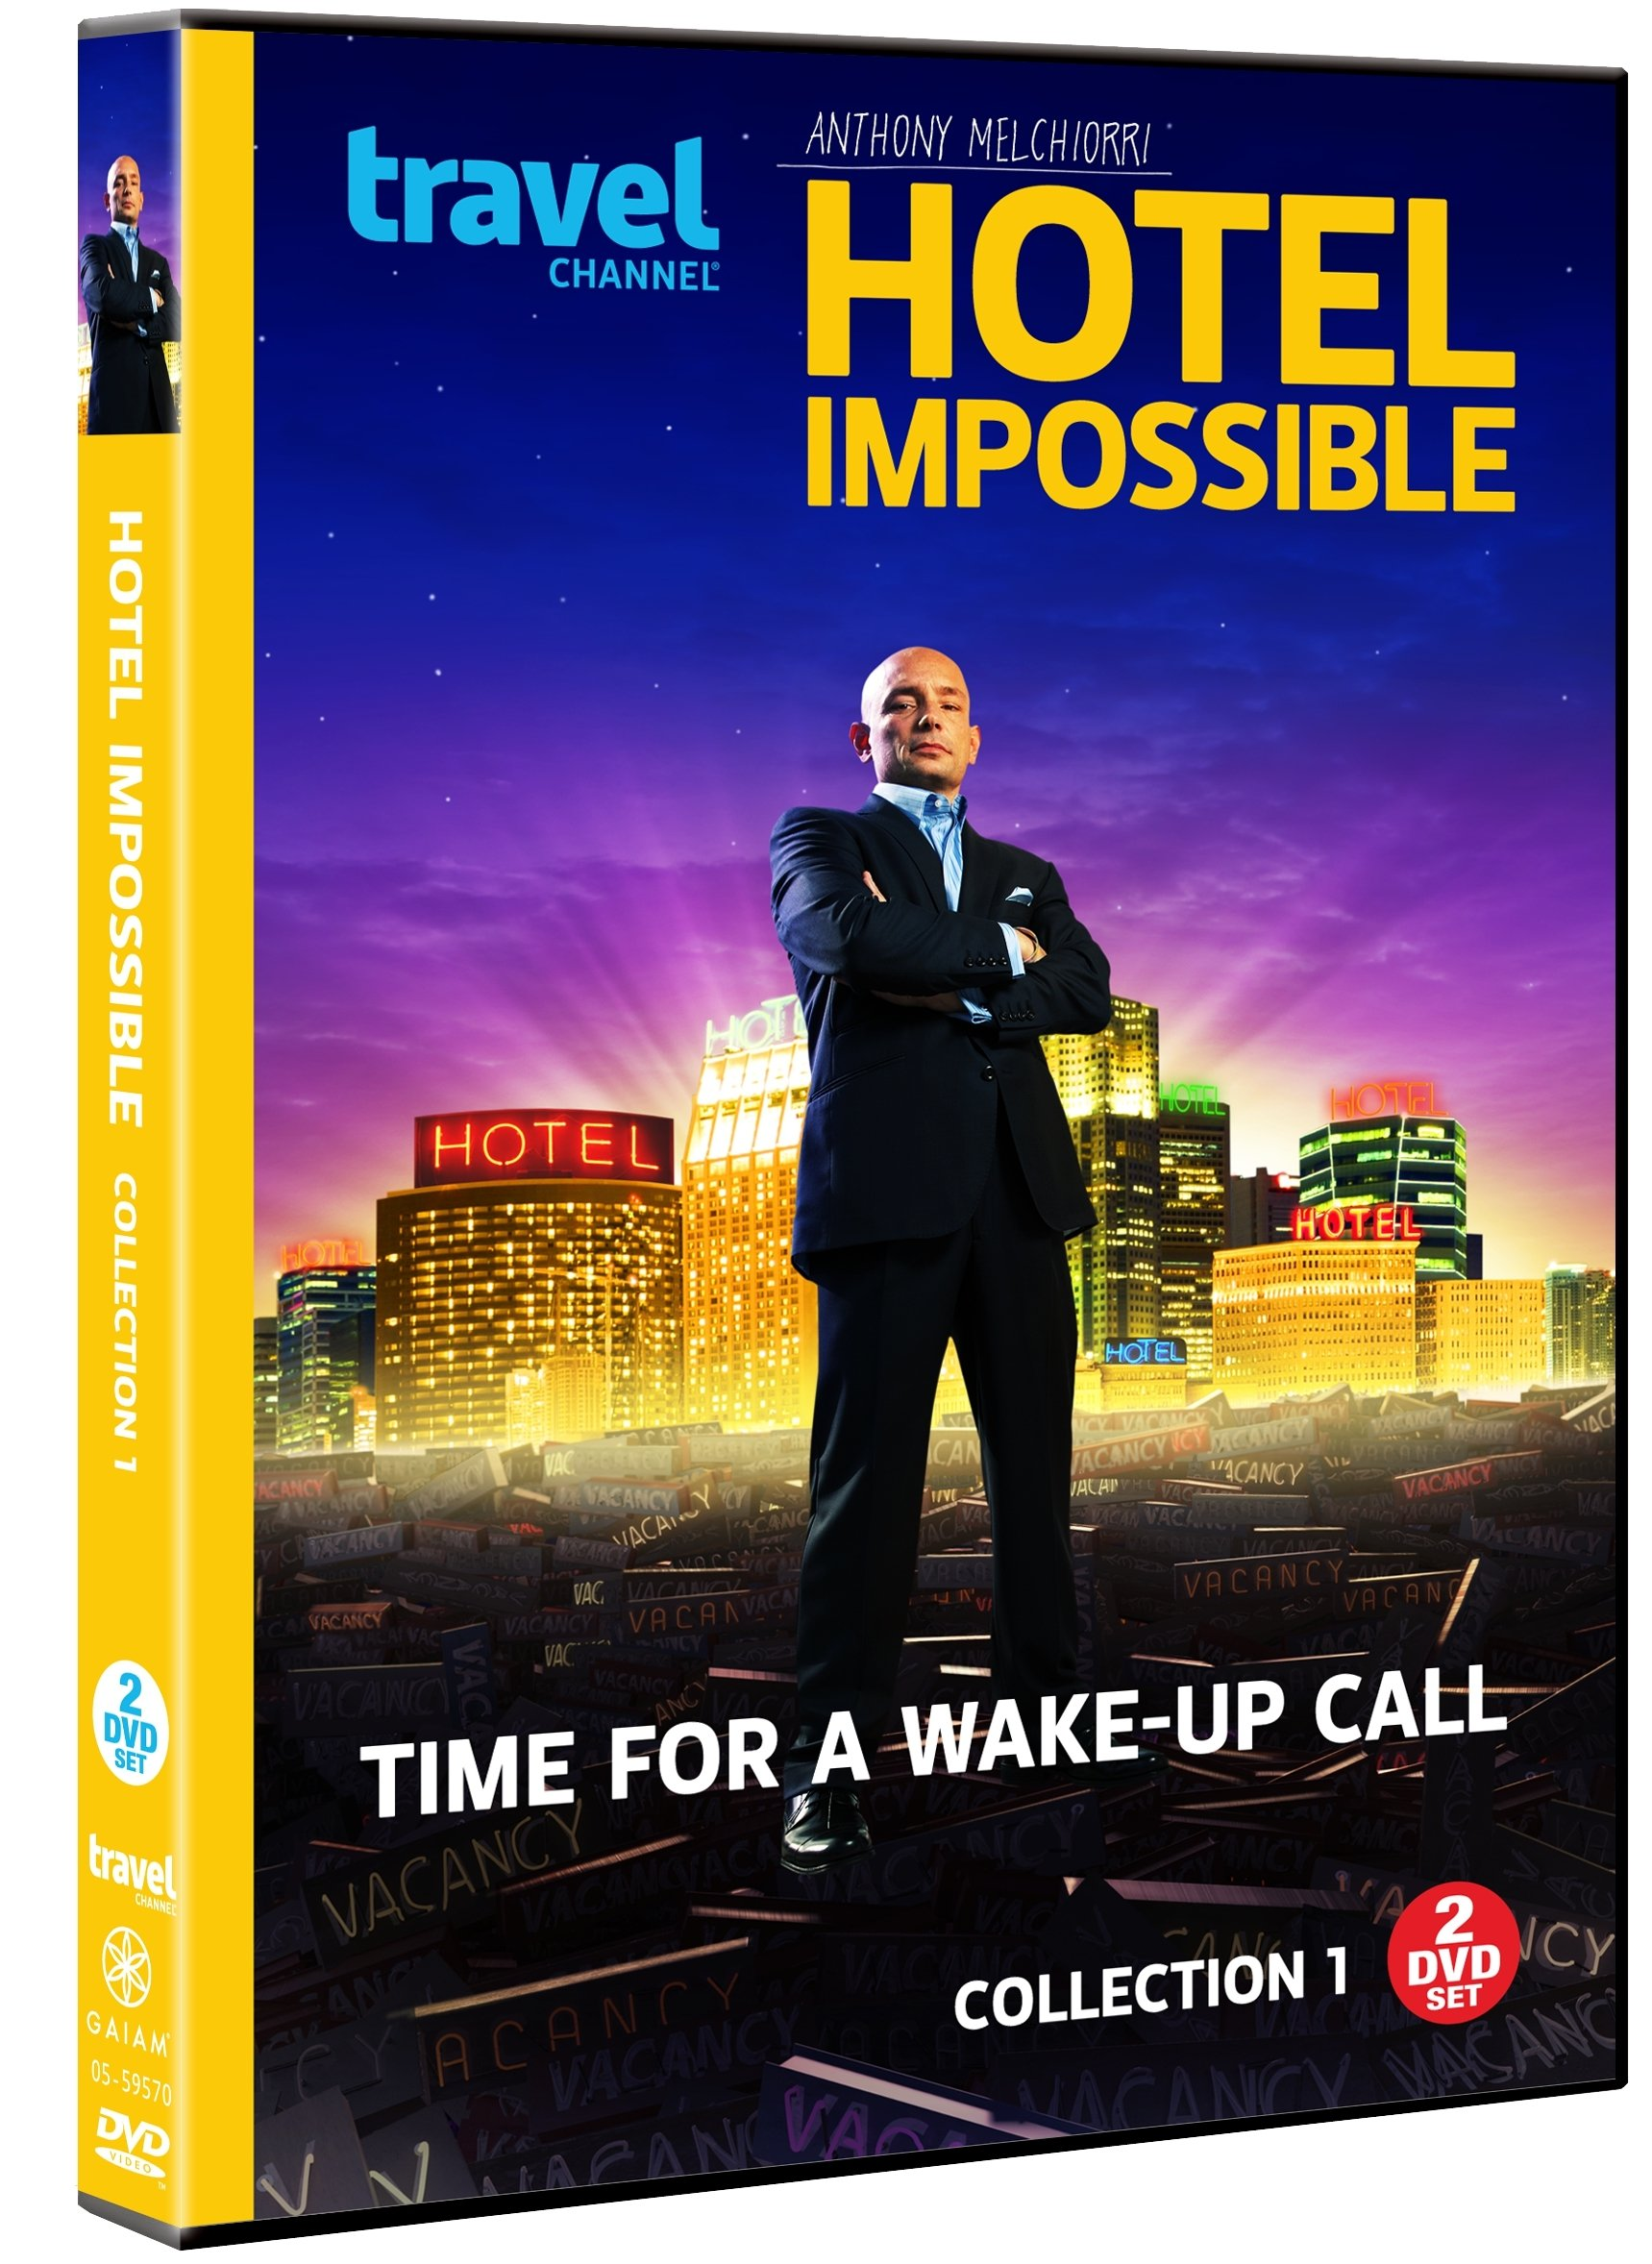 Hotel Impossible: Collection 1 by Travel Channel - Gaiam